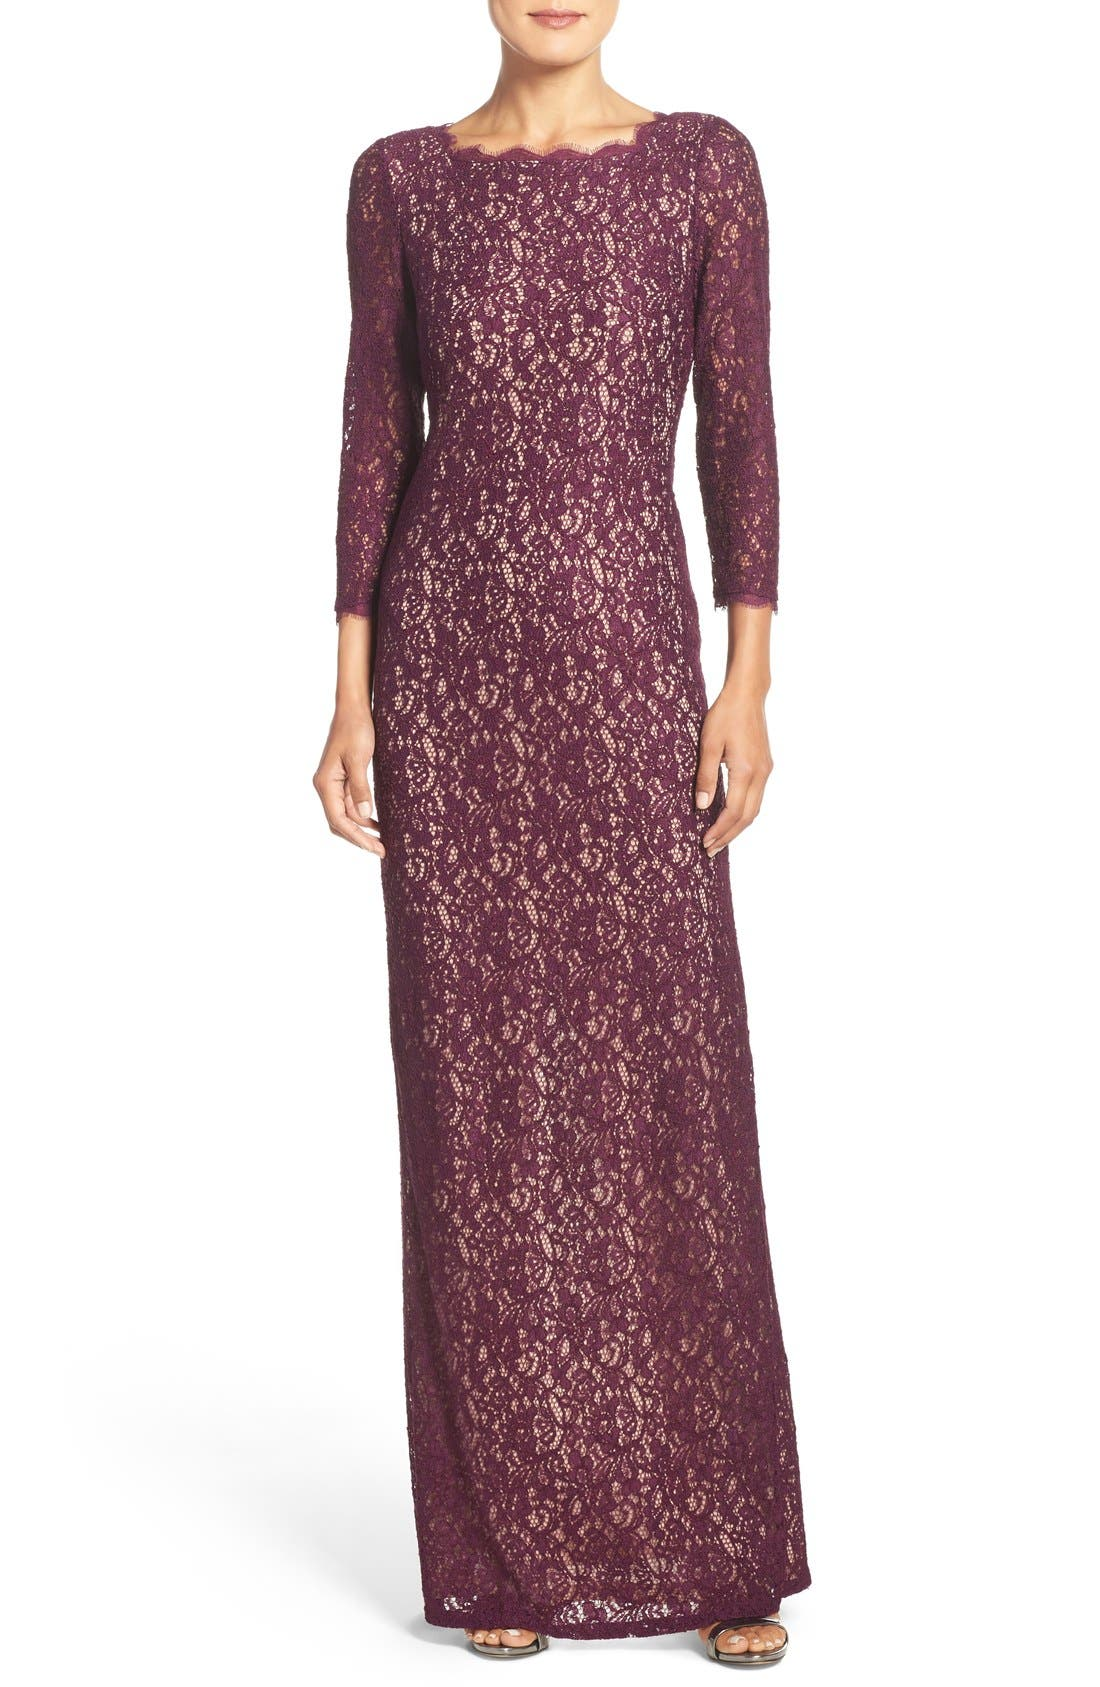 Alternate Image 1 Selected - Adrianna Papell Scalloped Lace Gown (Regular & Petite)